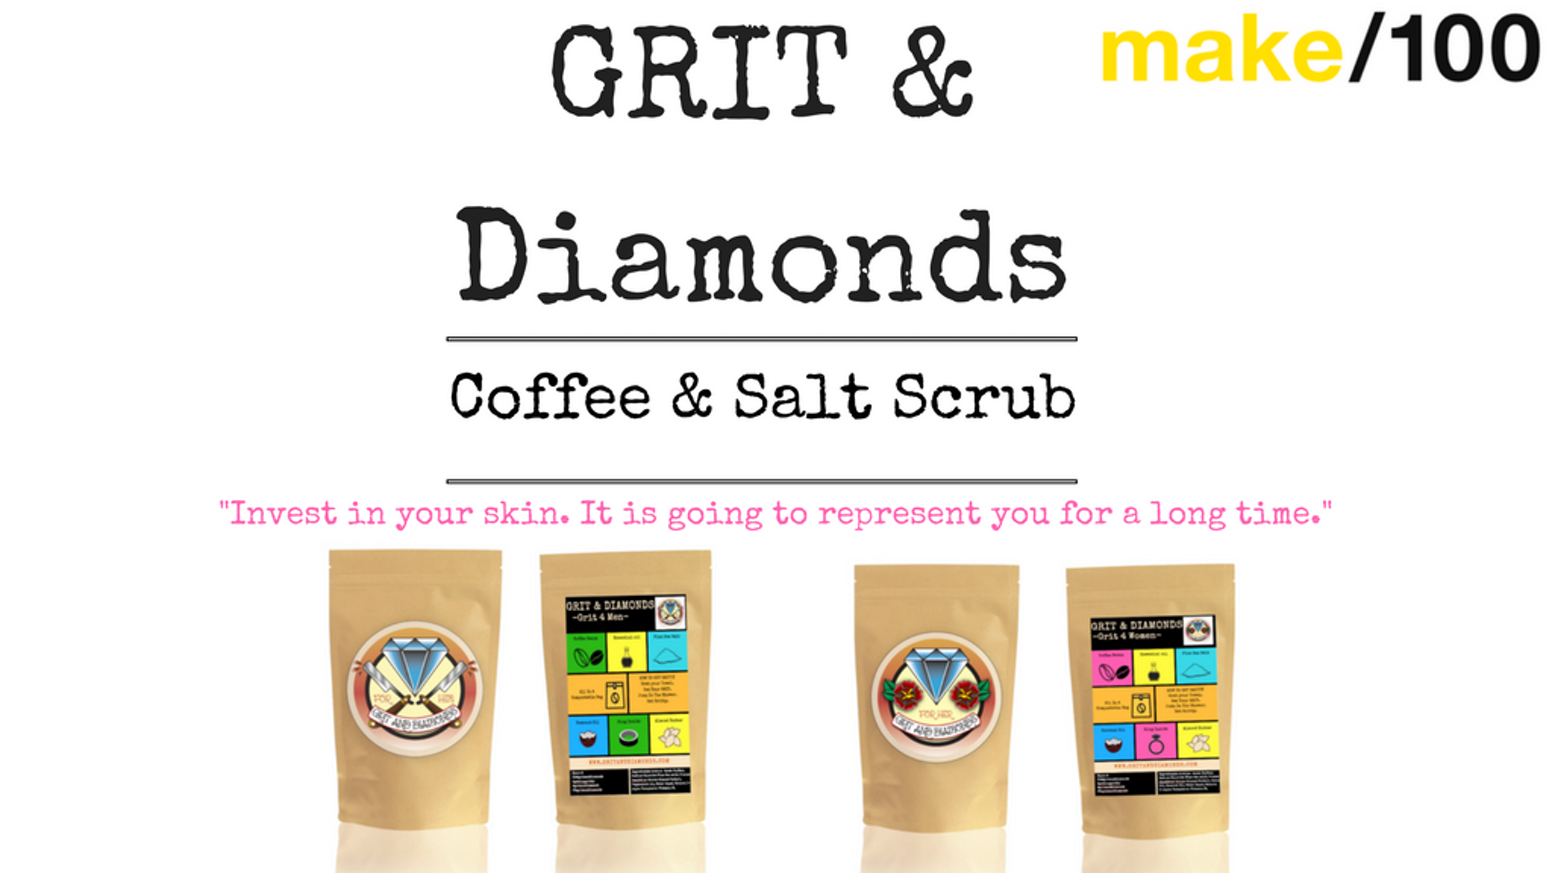 Make100 Grit Diamonds Coffee Salt Body Scrub 100natural By Ucc Columbia 20 X Gram Uses All Natural Ingredients In This Lavish Exfoliant